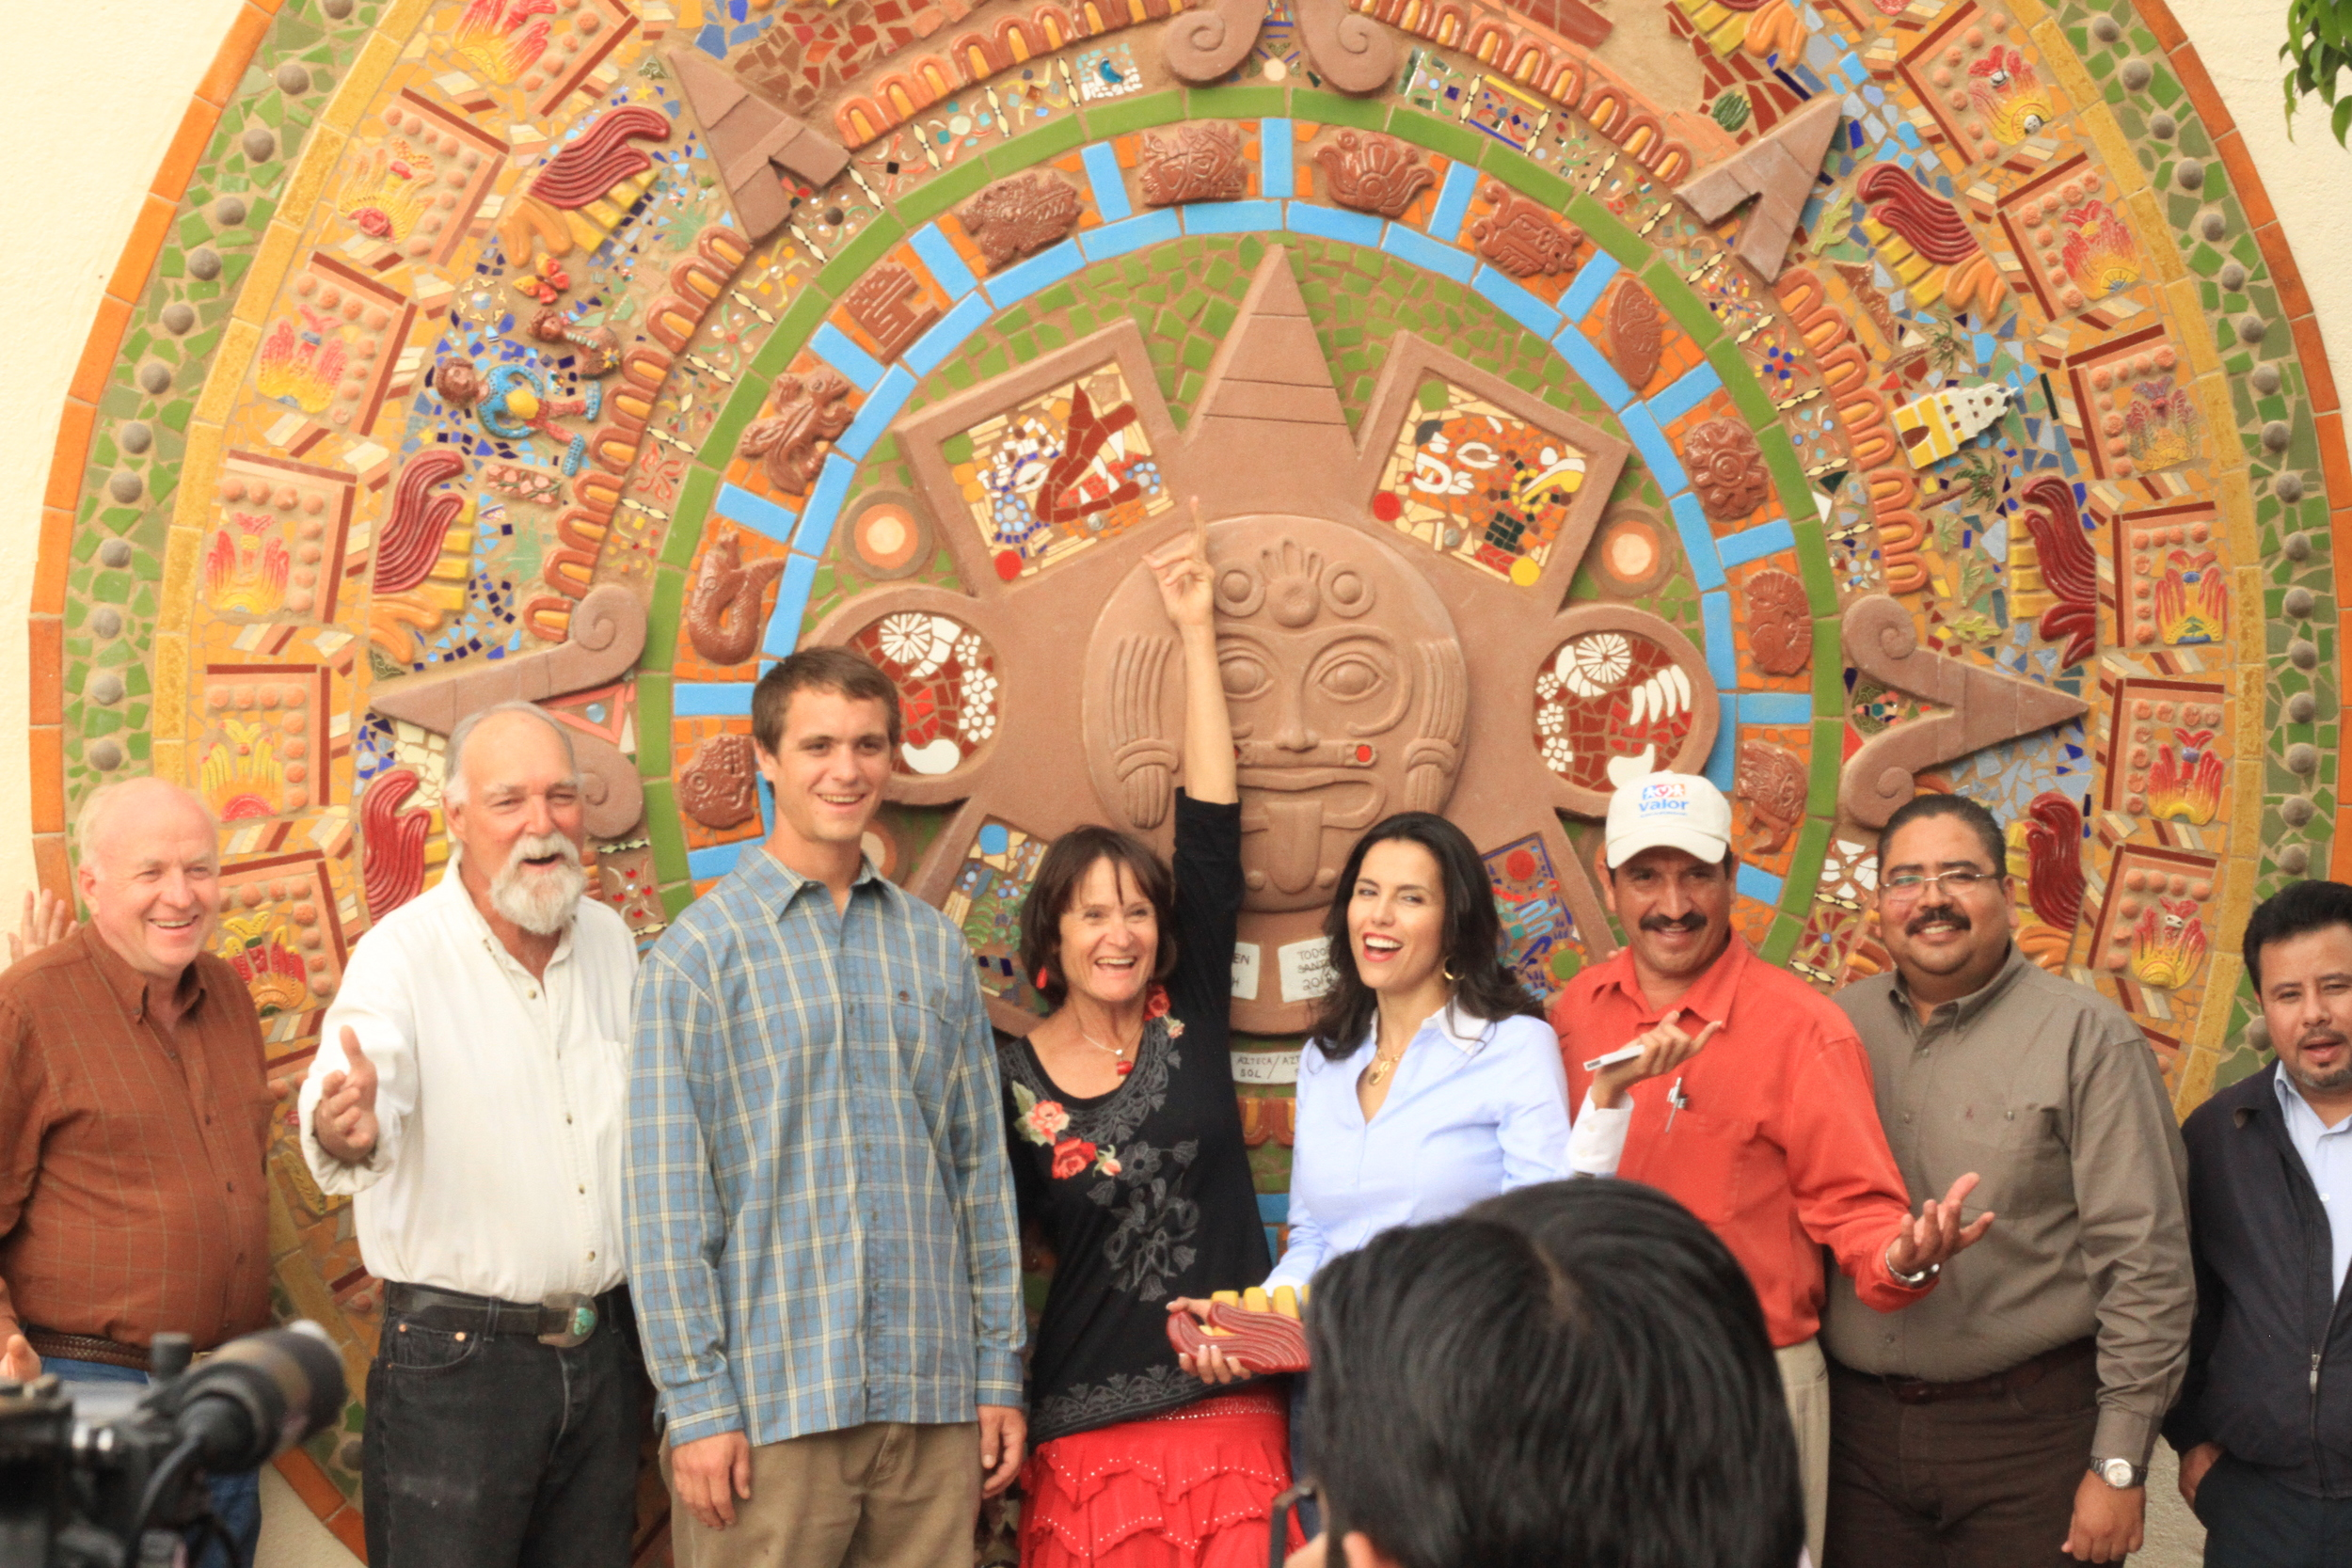 Aztec Calendar Mural Heaven on Earth Worksop and Community-Build 2012 Town Plaza, Todos Santos, B.C.S., Mexico